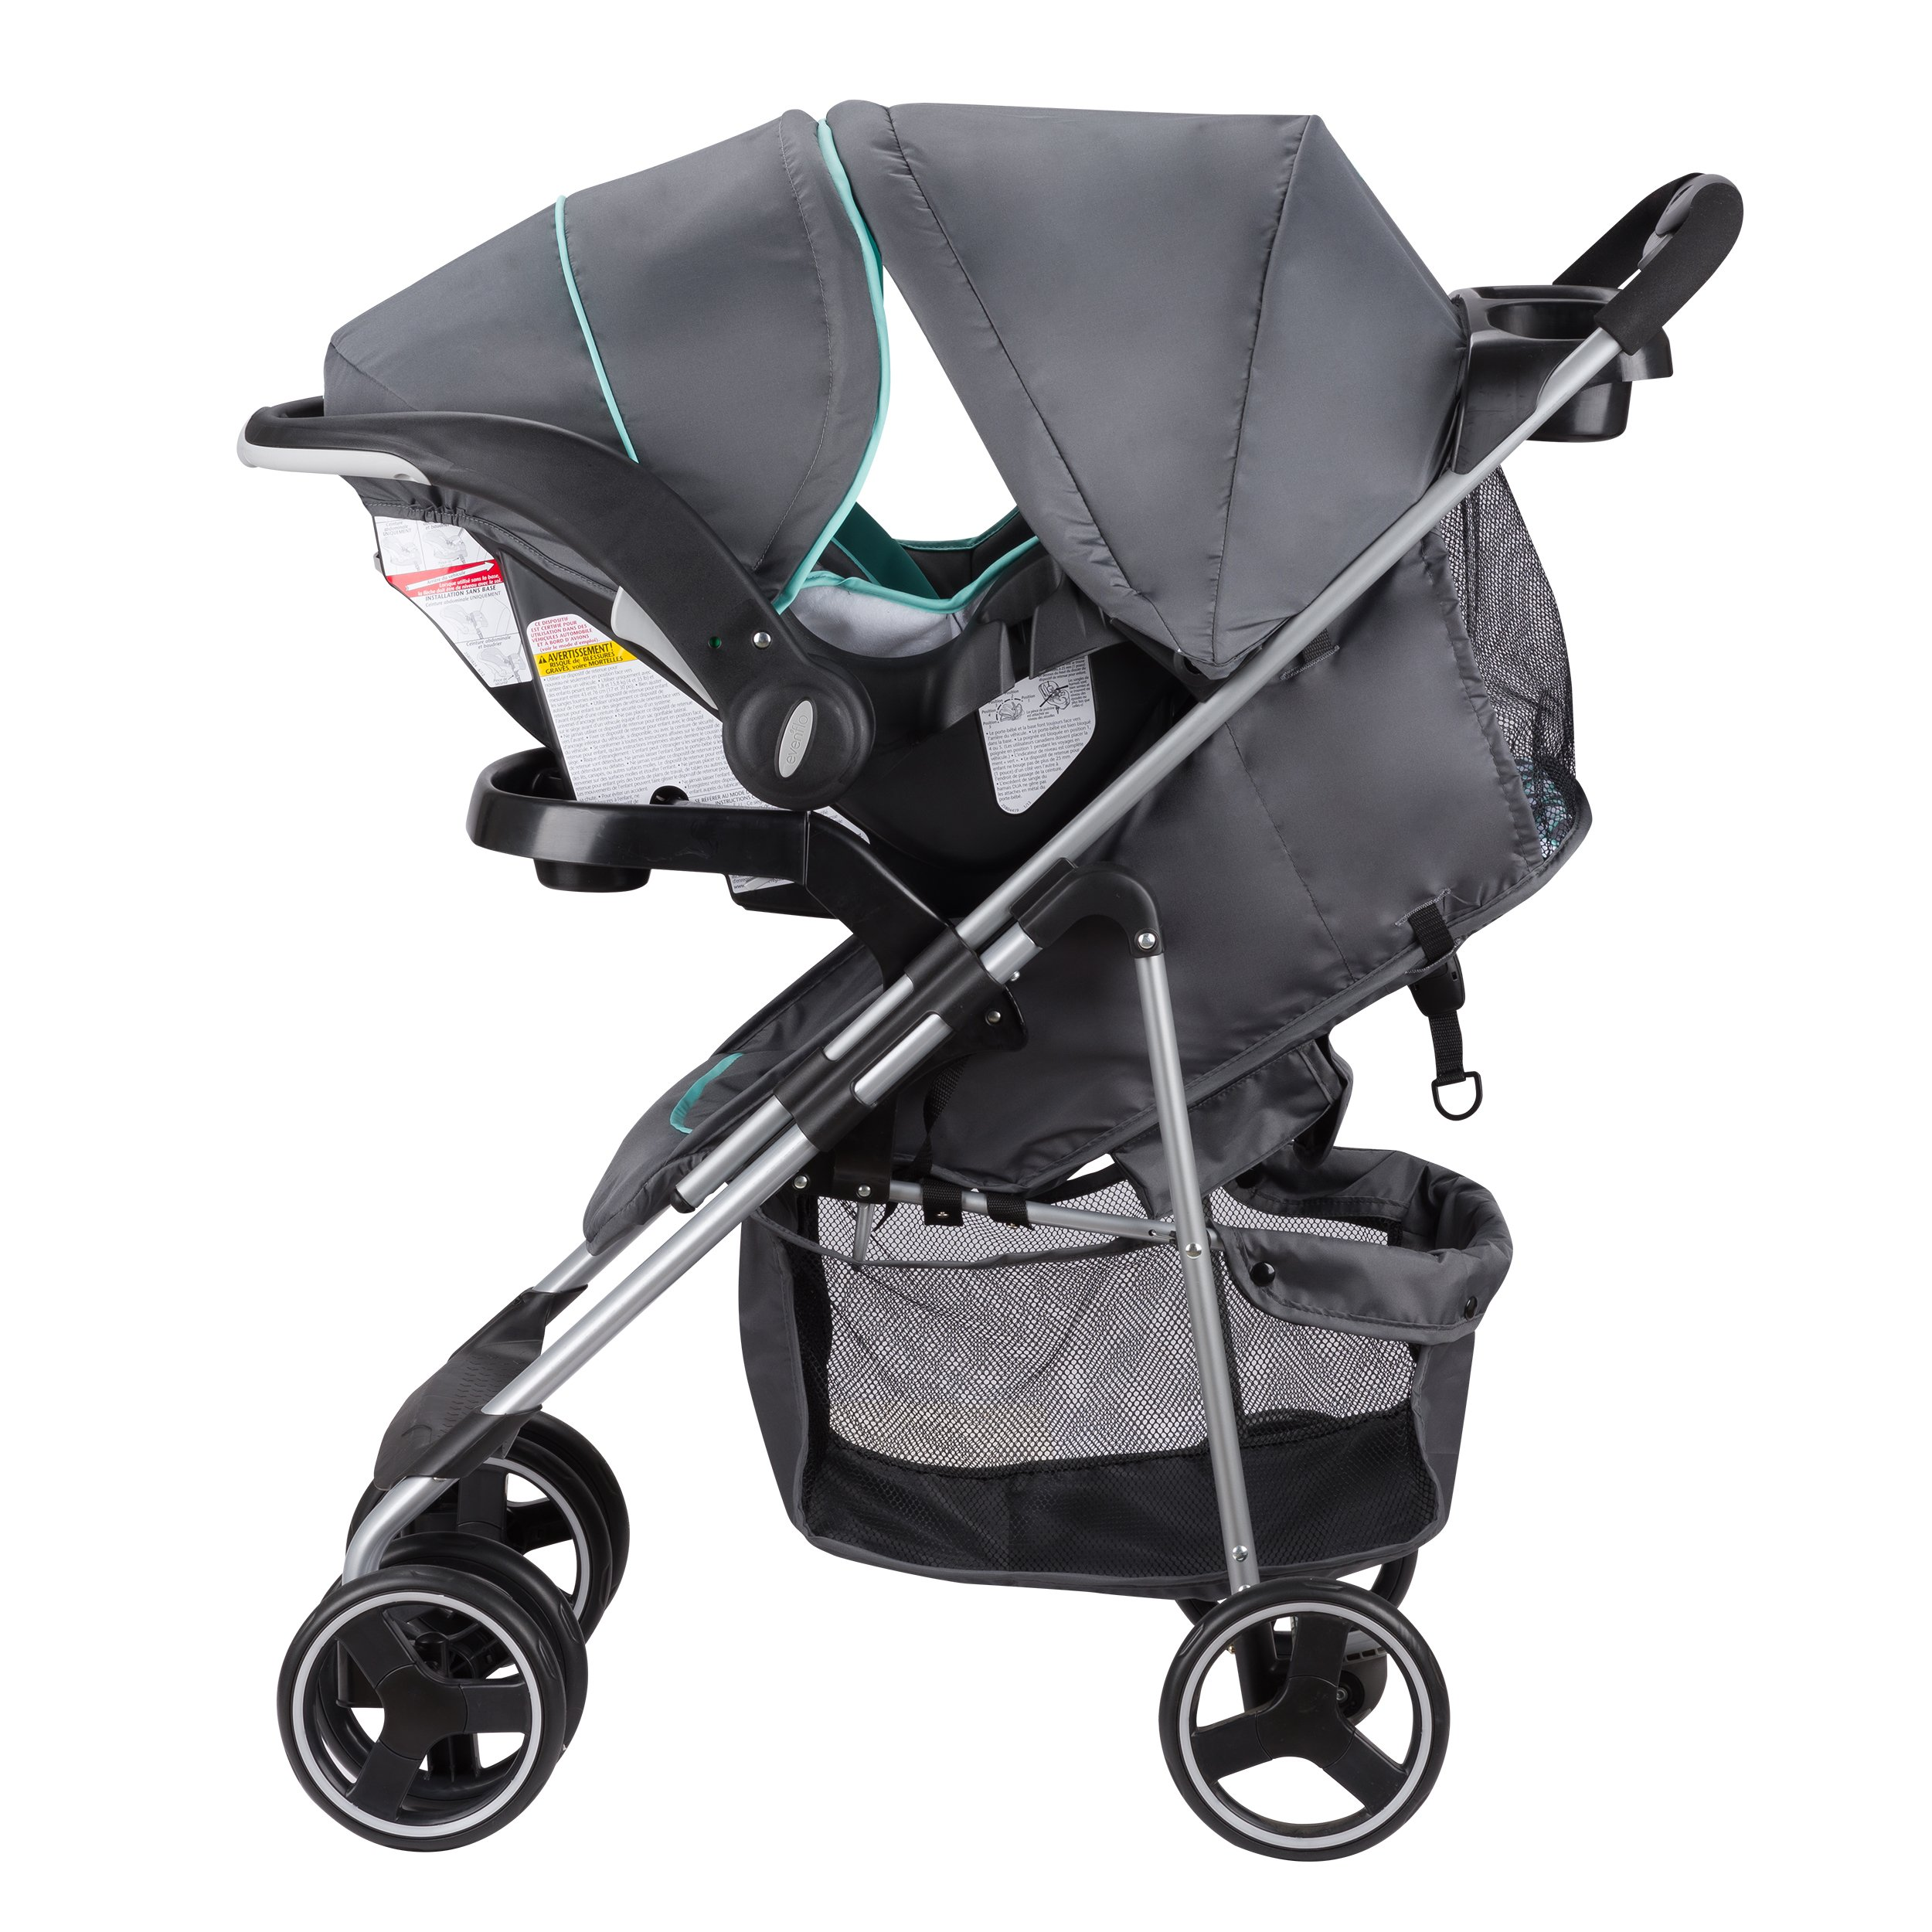 Evenflo Vive Travel System with Embrace, Spearmint Spree by Evenflo (Image #2)